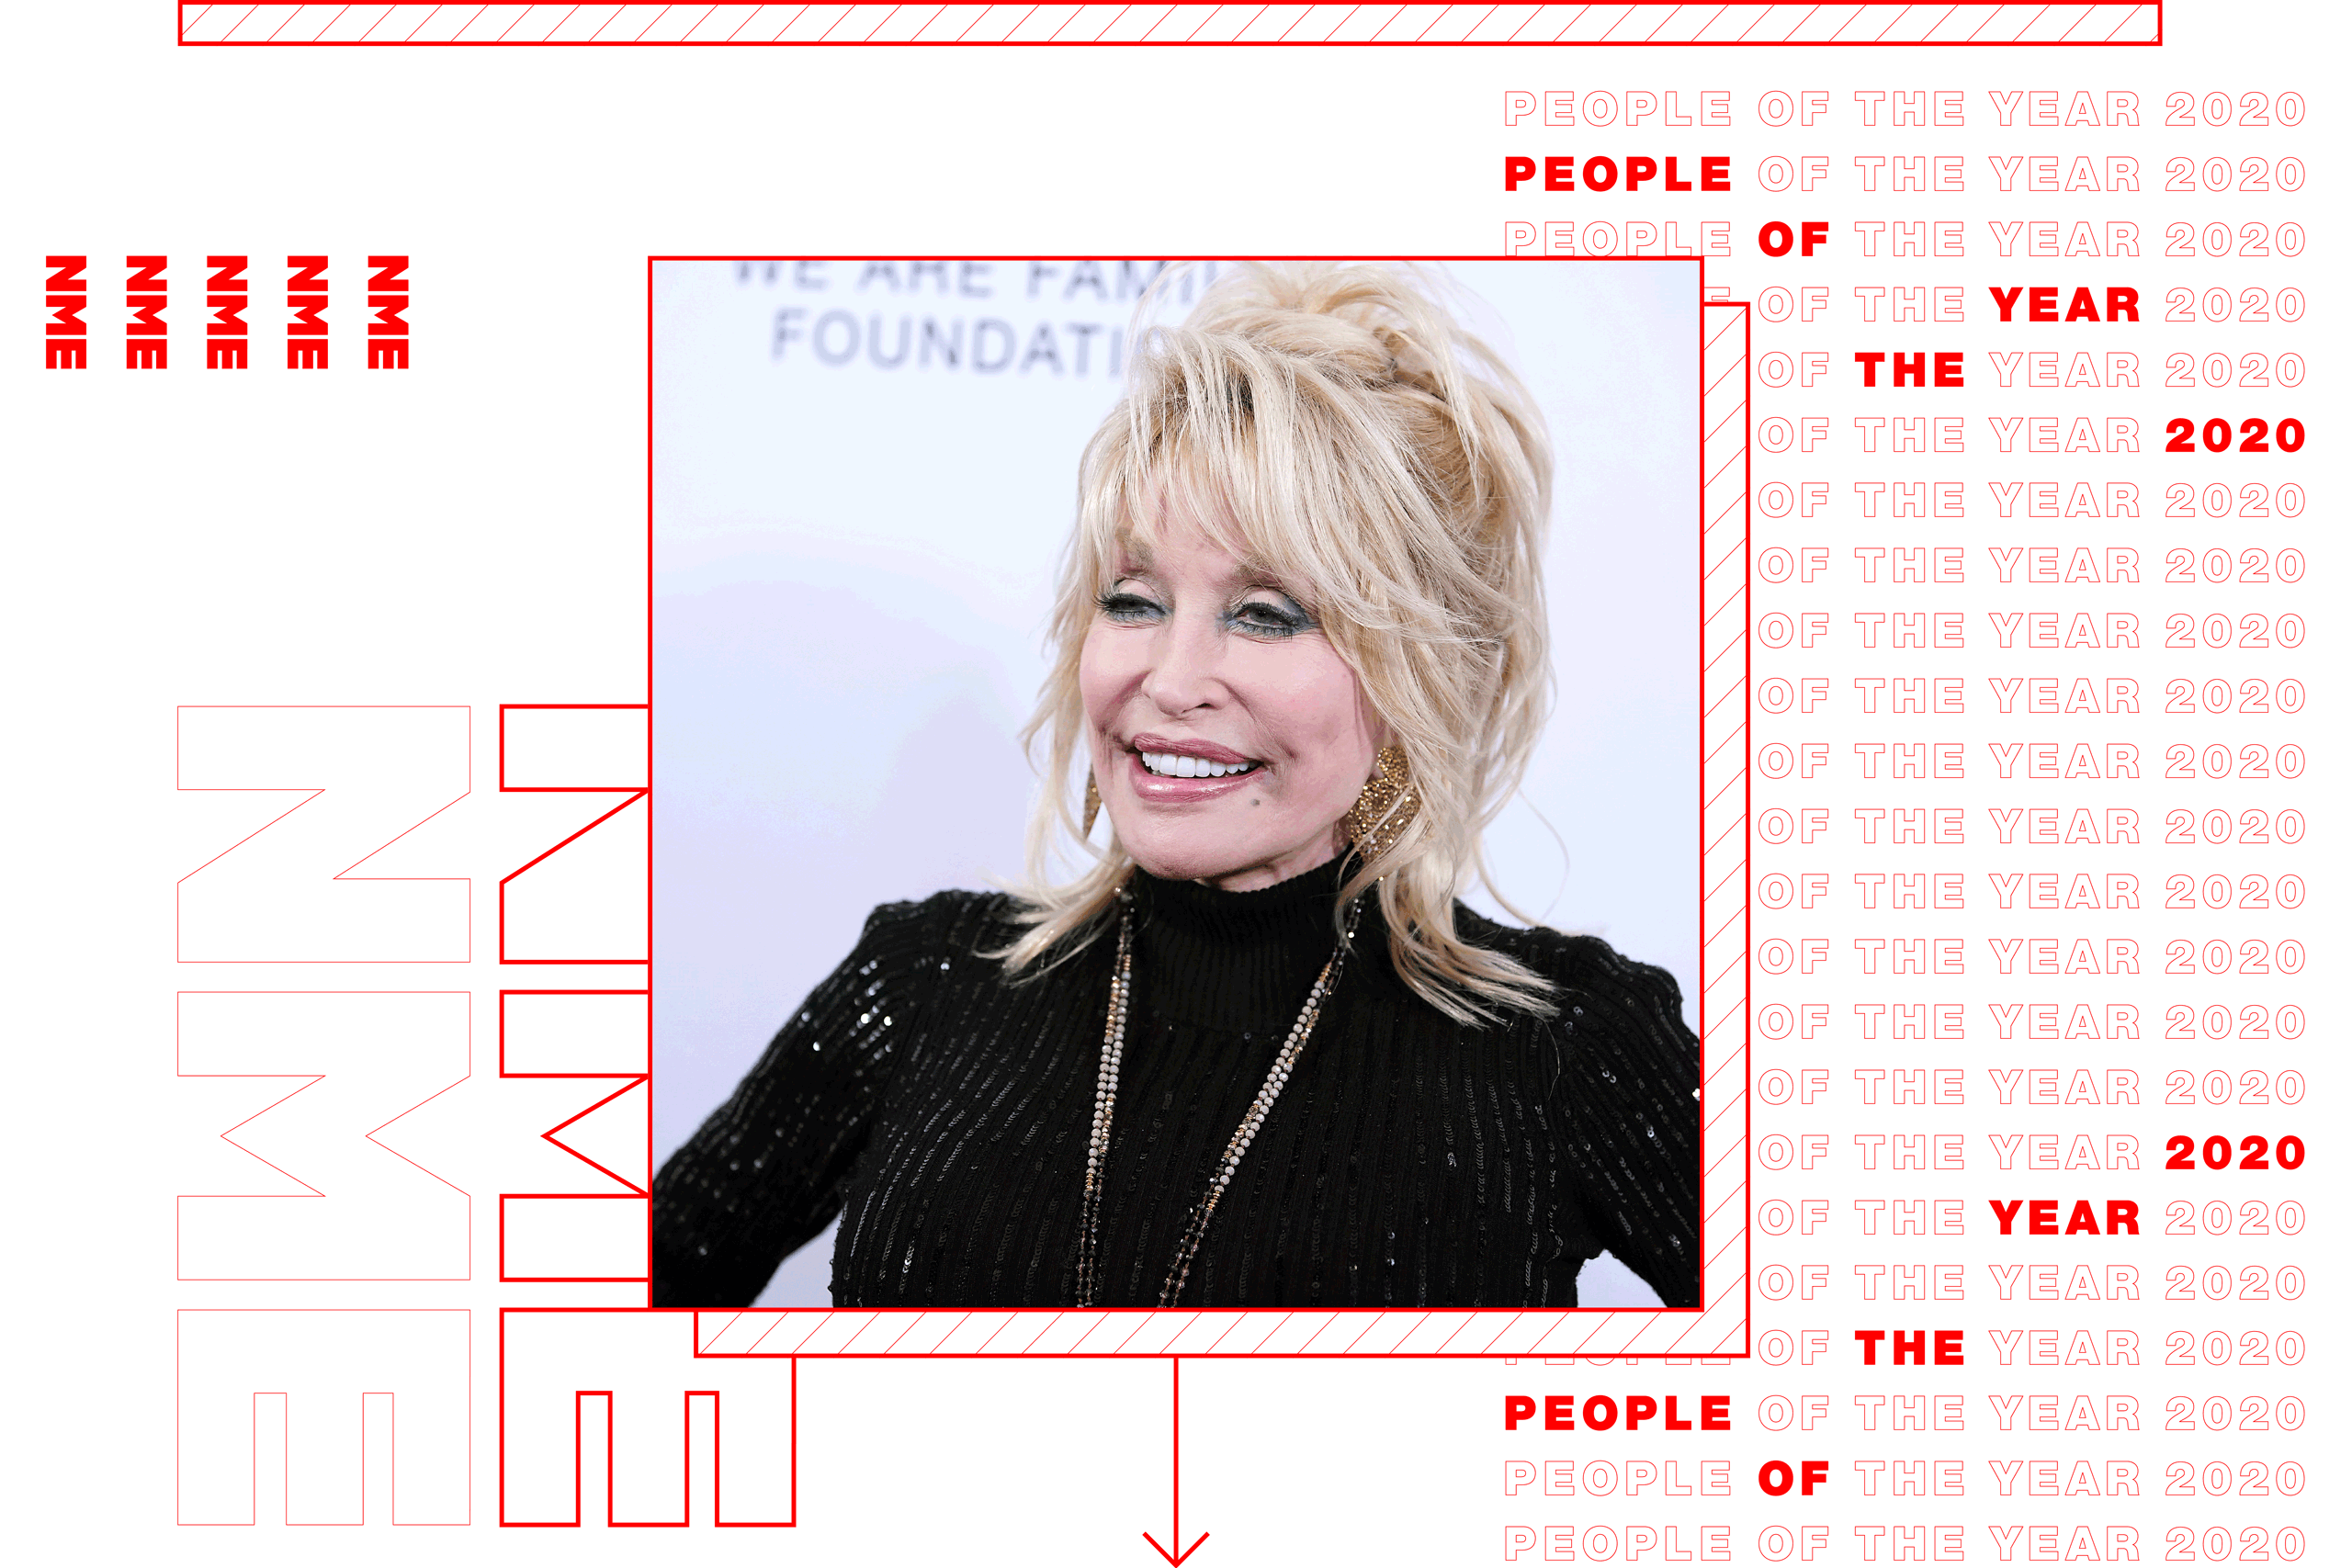 nme people of the year 2020 dolly parton